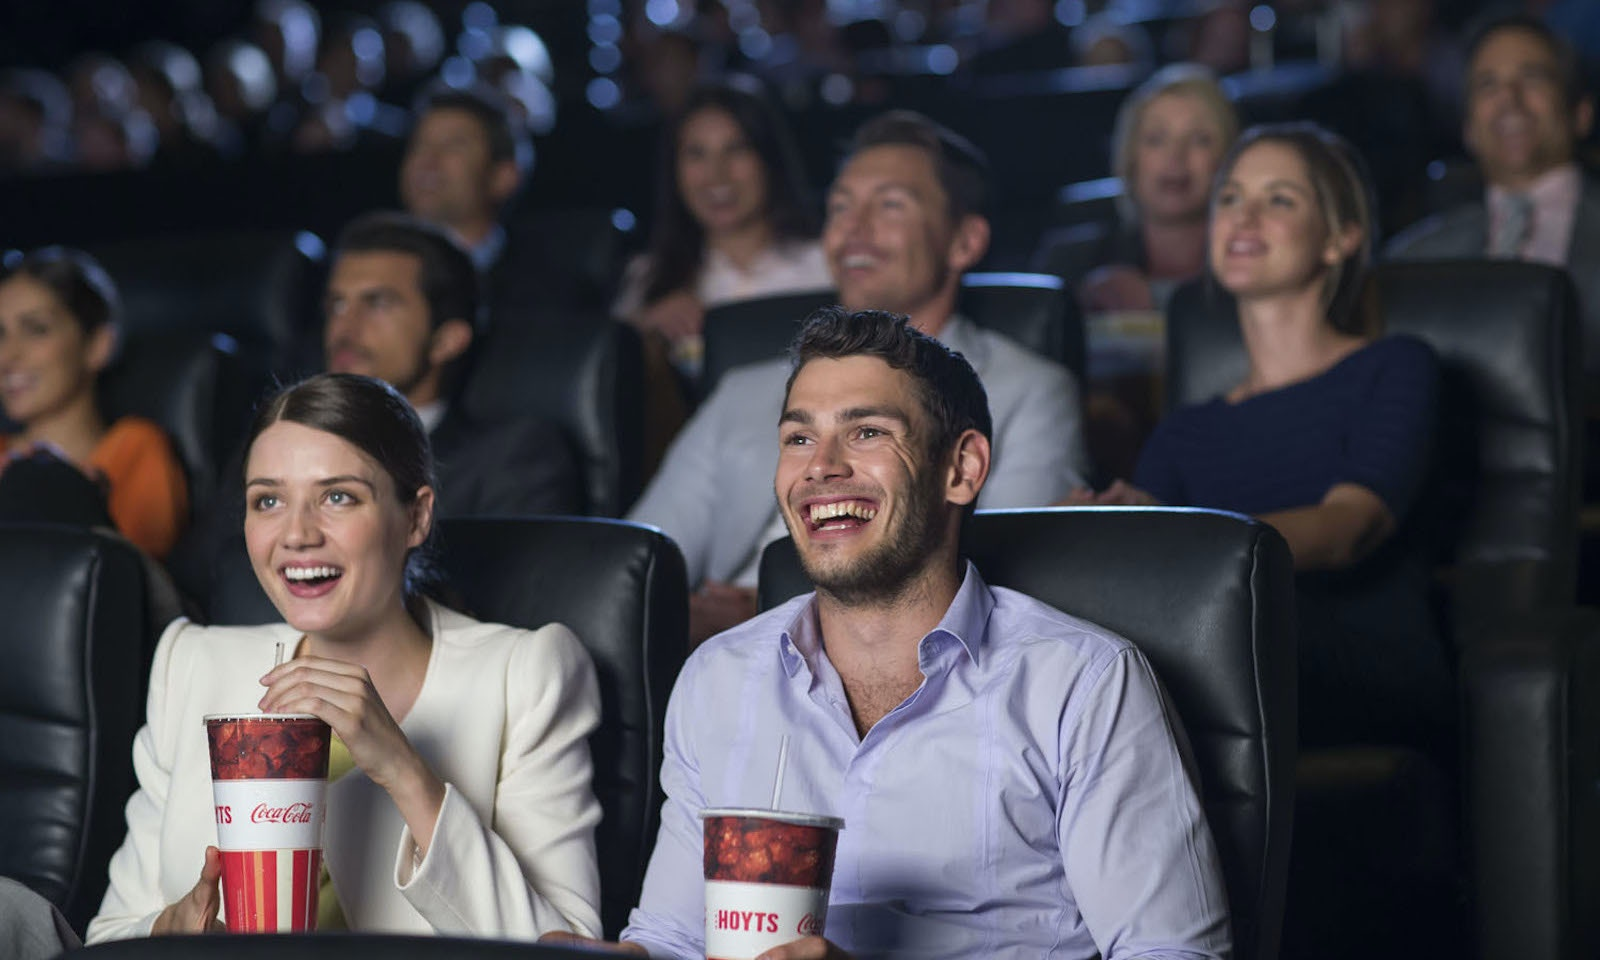 Top Ideas for Entertainment at HOYTS